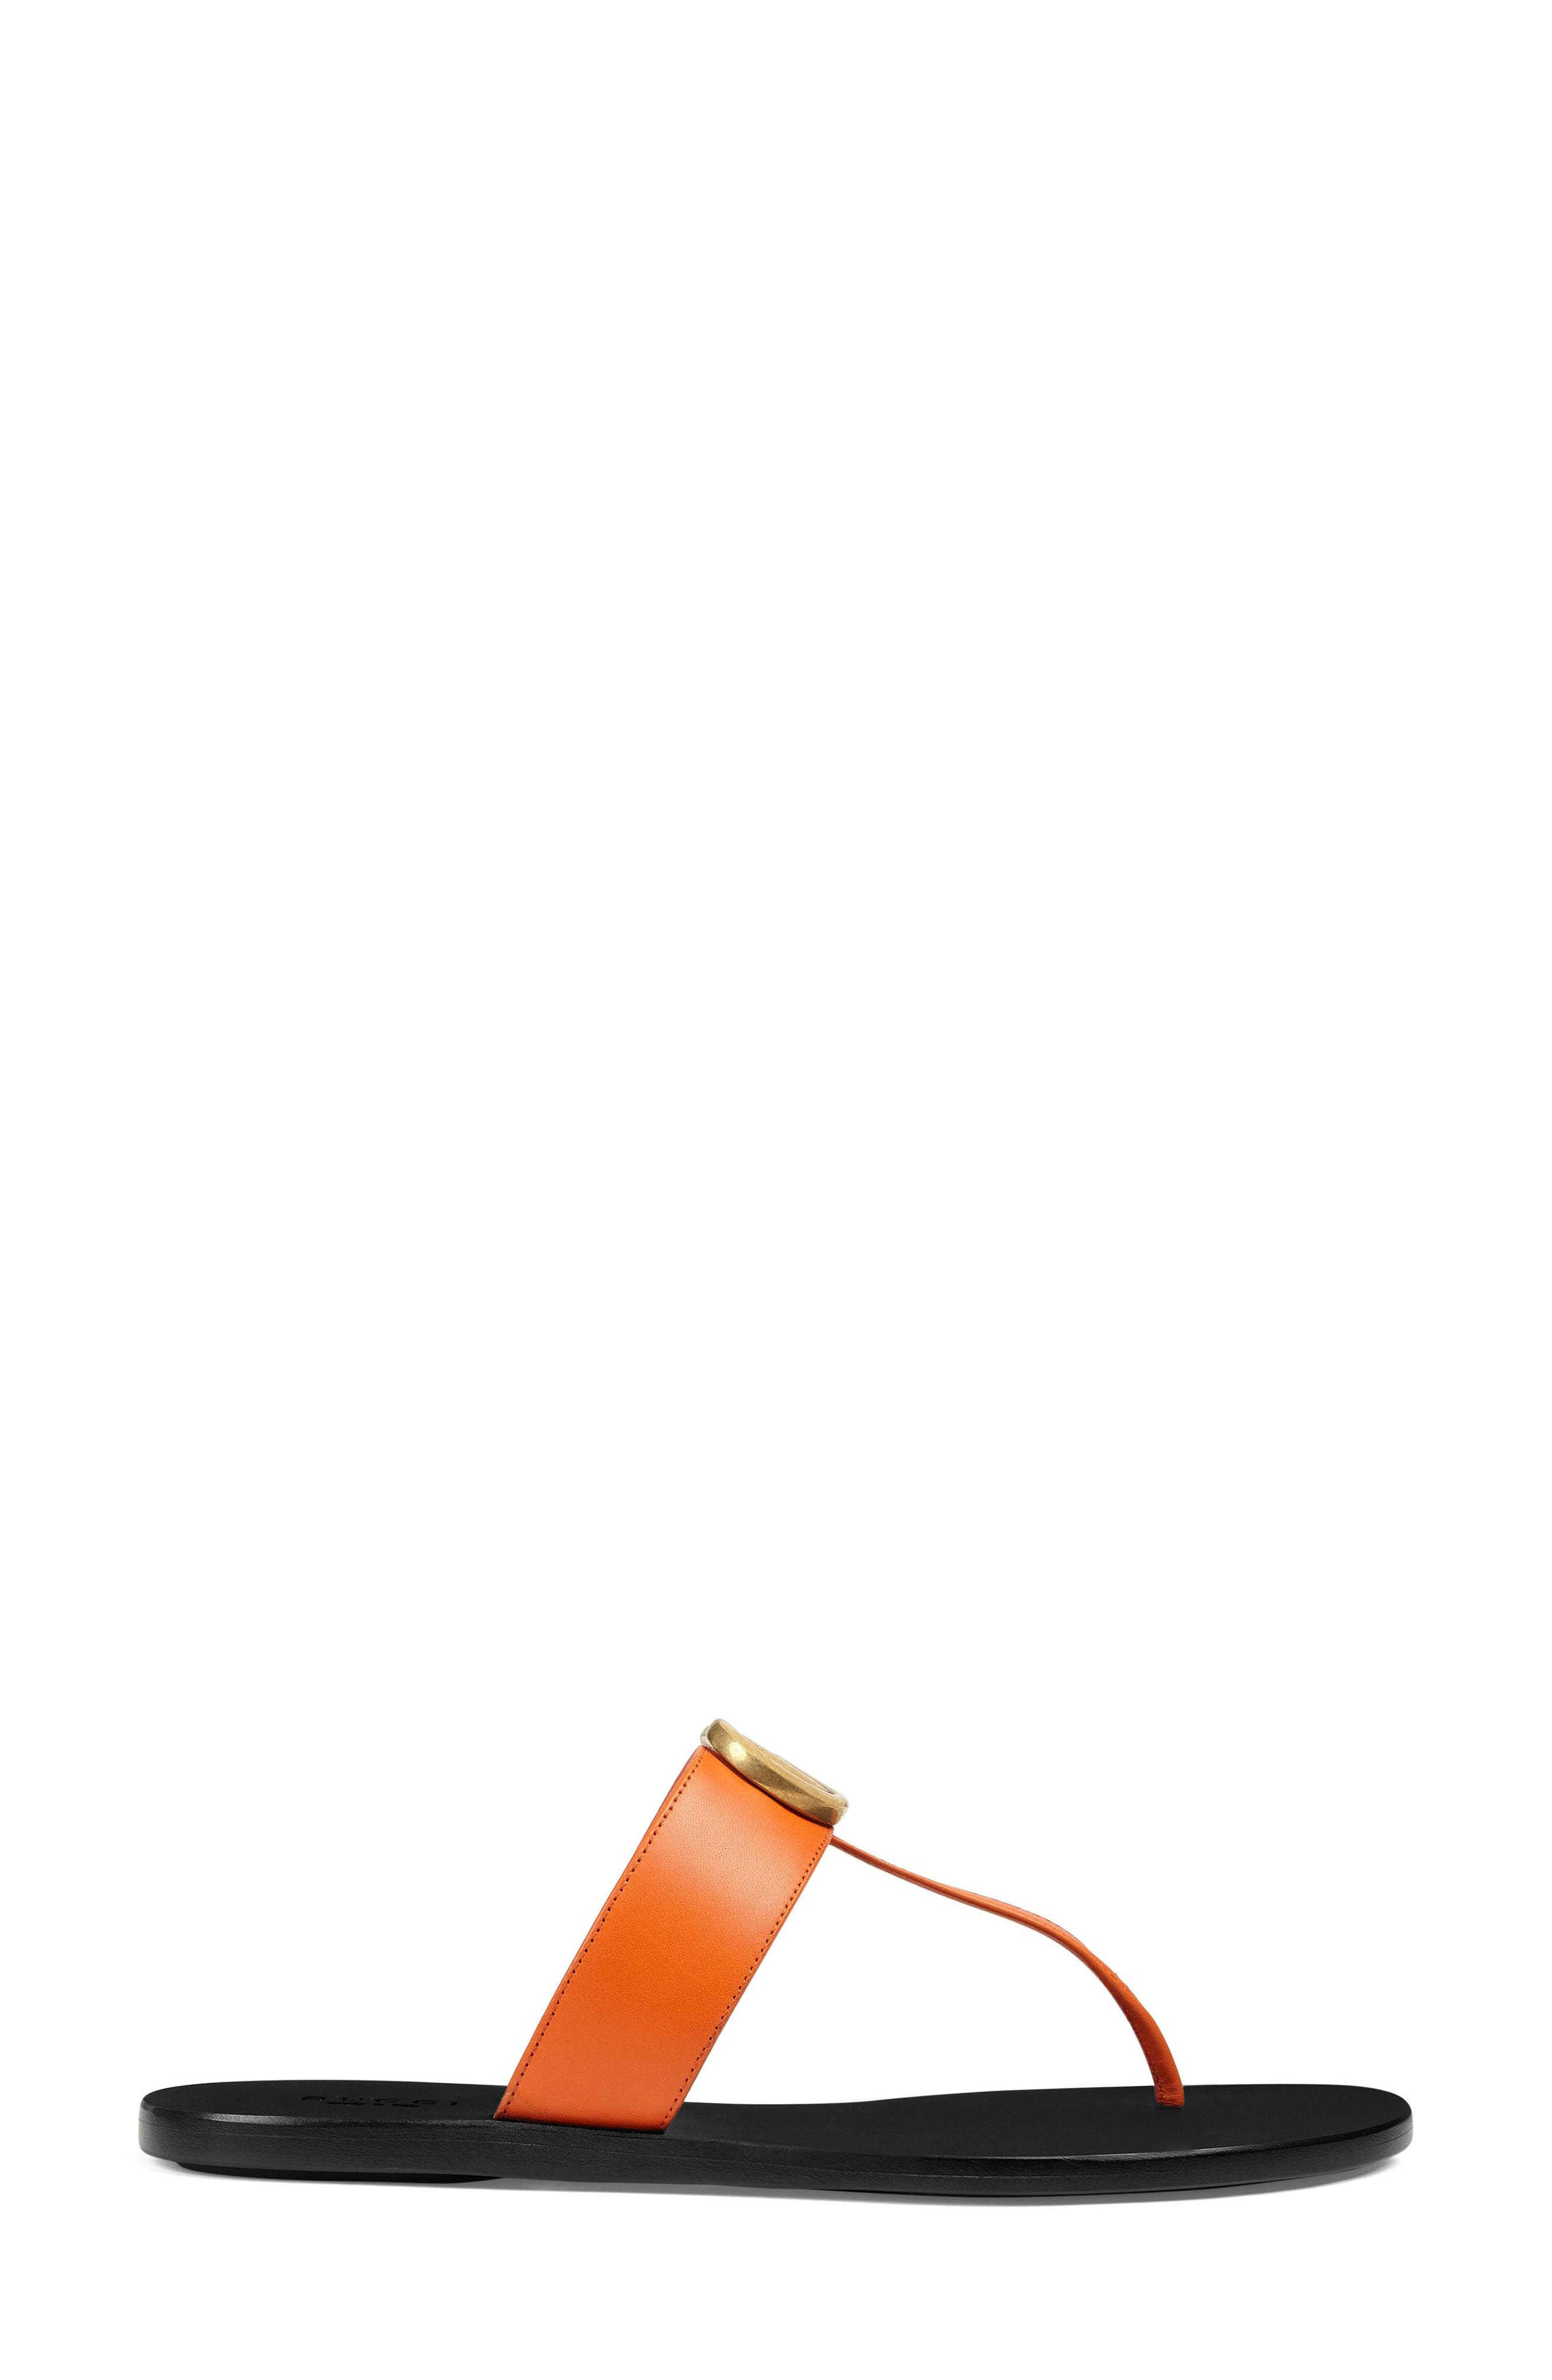 6507a6864 gucci marmont shoes | Nordstrom